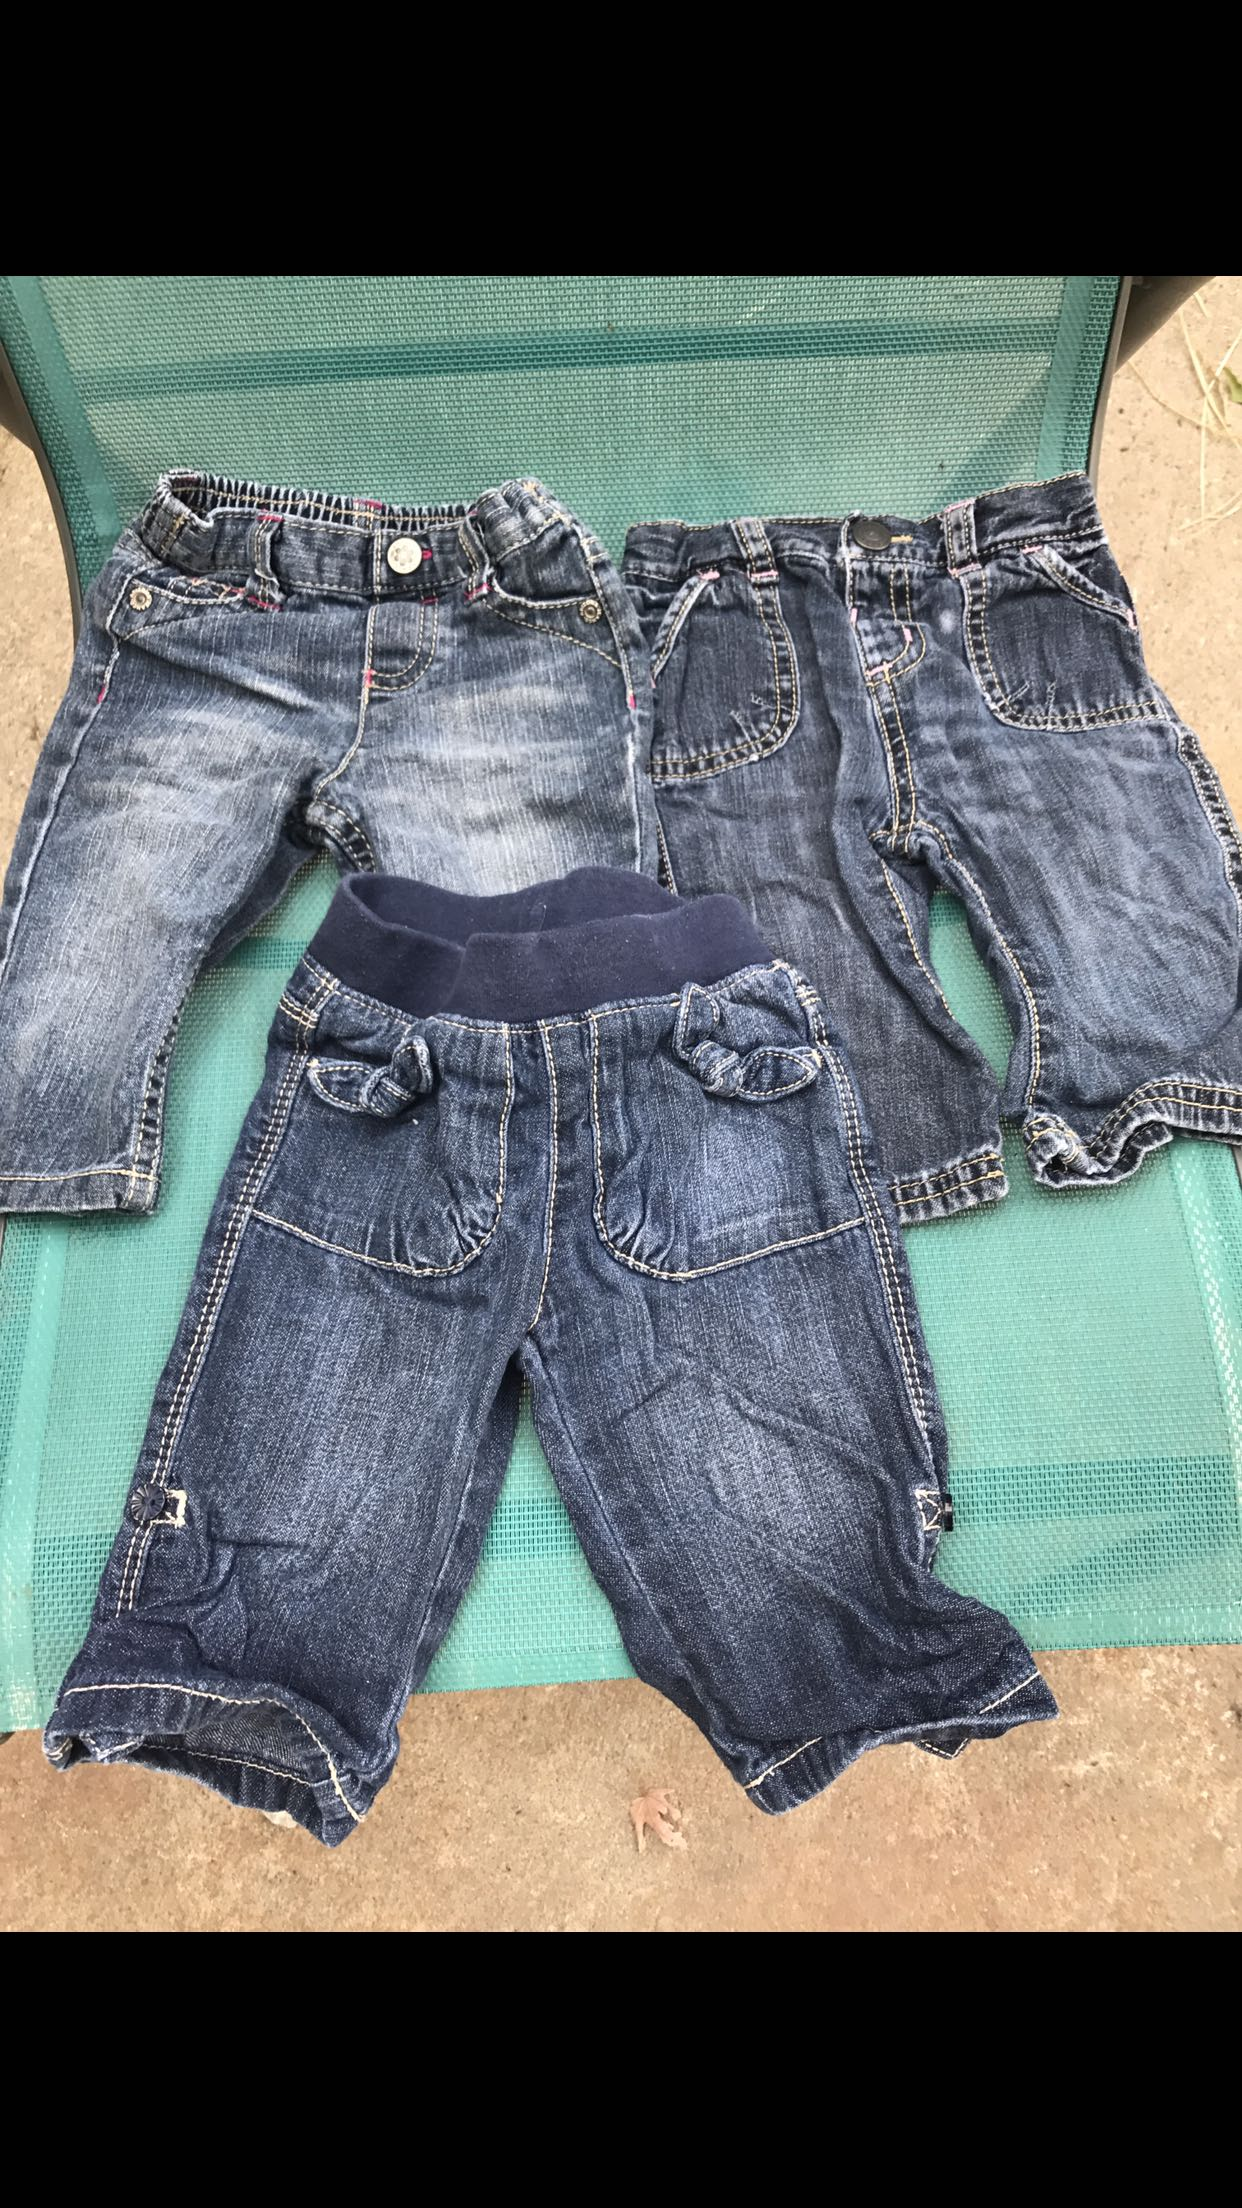 3-6 month baby girl jeans